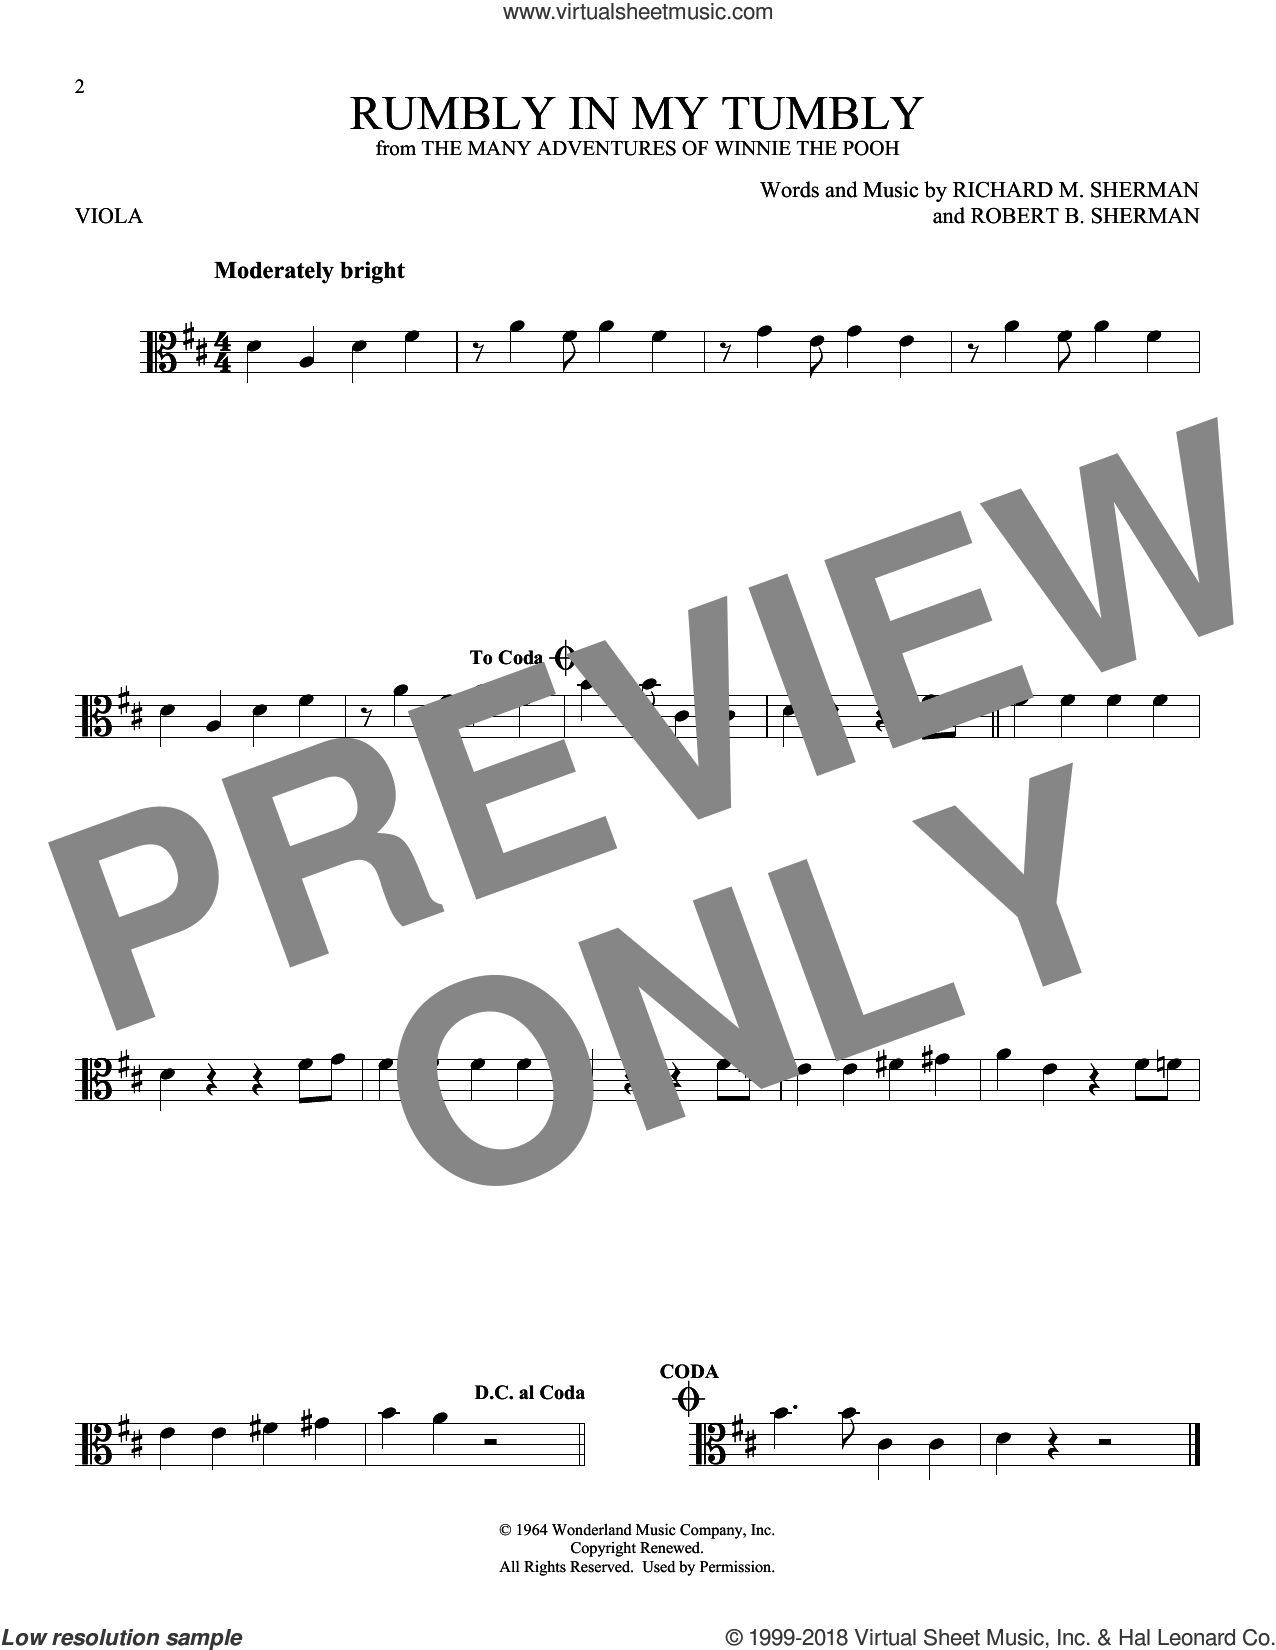 Rumbly In My Tumbly sheet music for viola solo by Richard M. Sherman and Robert B. Sherman, intermediate skill level